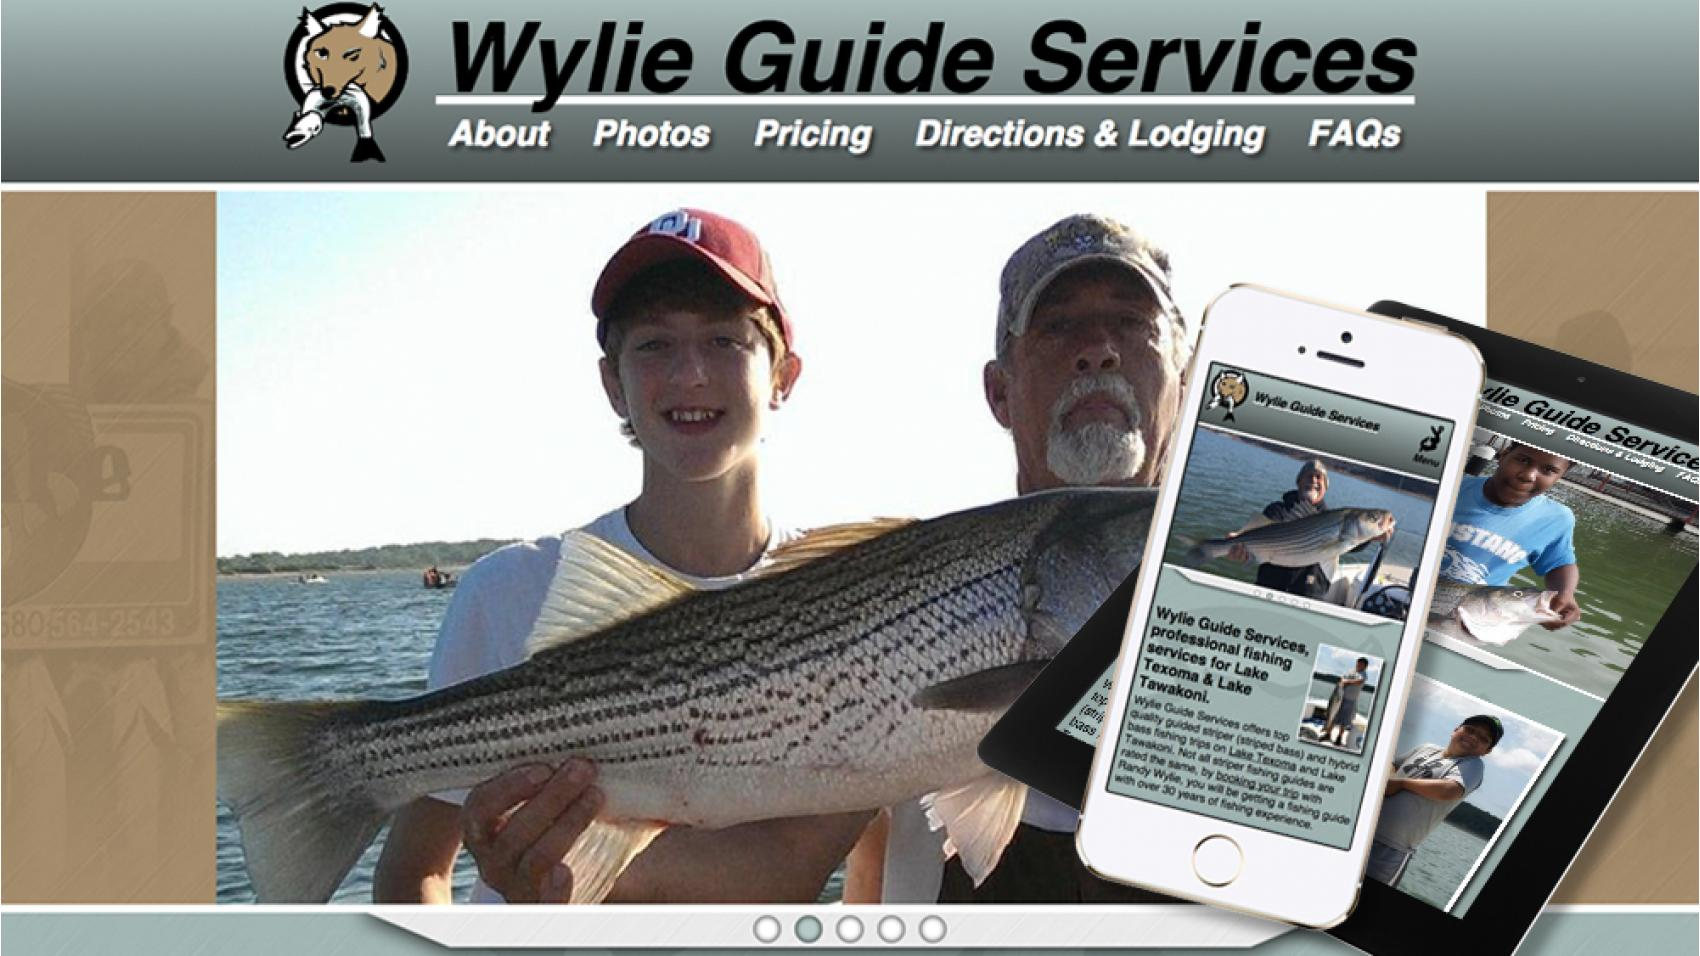 Wylie Guide Services